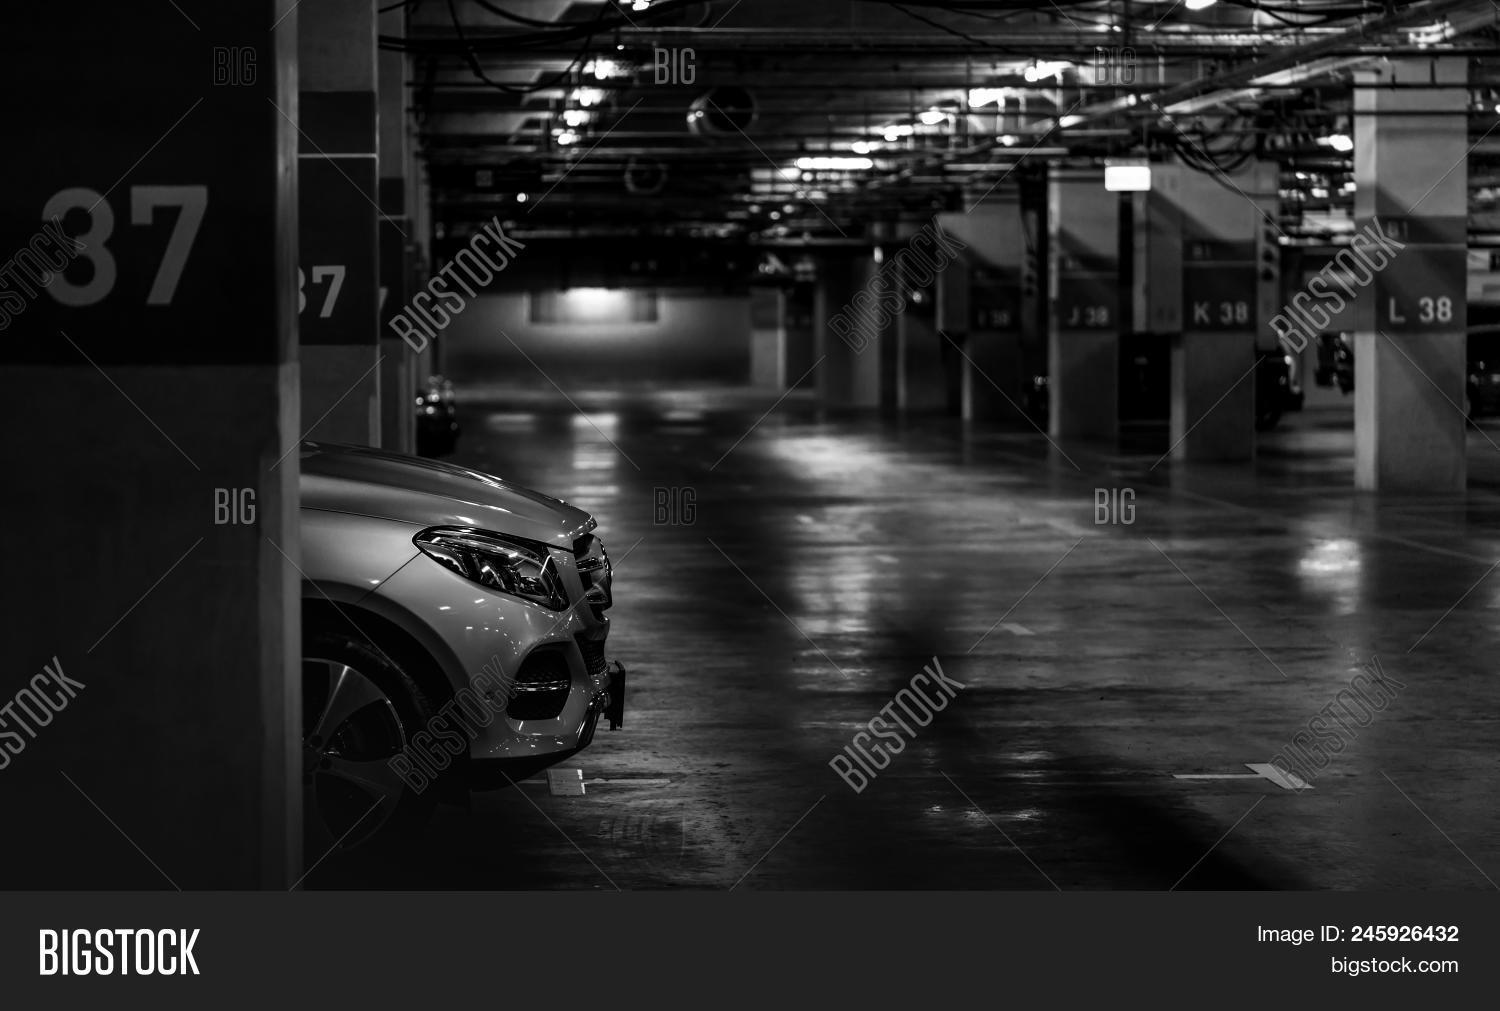 37,38,abandoned,architecture,automobile,background,basement,block,building,business,car,cement,city,concept,concrete,dark,drive,empty,floor,garage,indoor,industry,inside,interior,large,light,line,lot,mall,night,nobody,old,open,park,parking,pole,public,row,shopping,sign,silver,structure,technology,traffic,transport,transportation,travel,underground,urban,vehicle